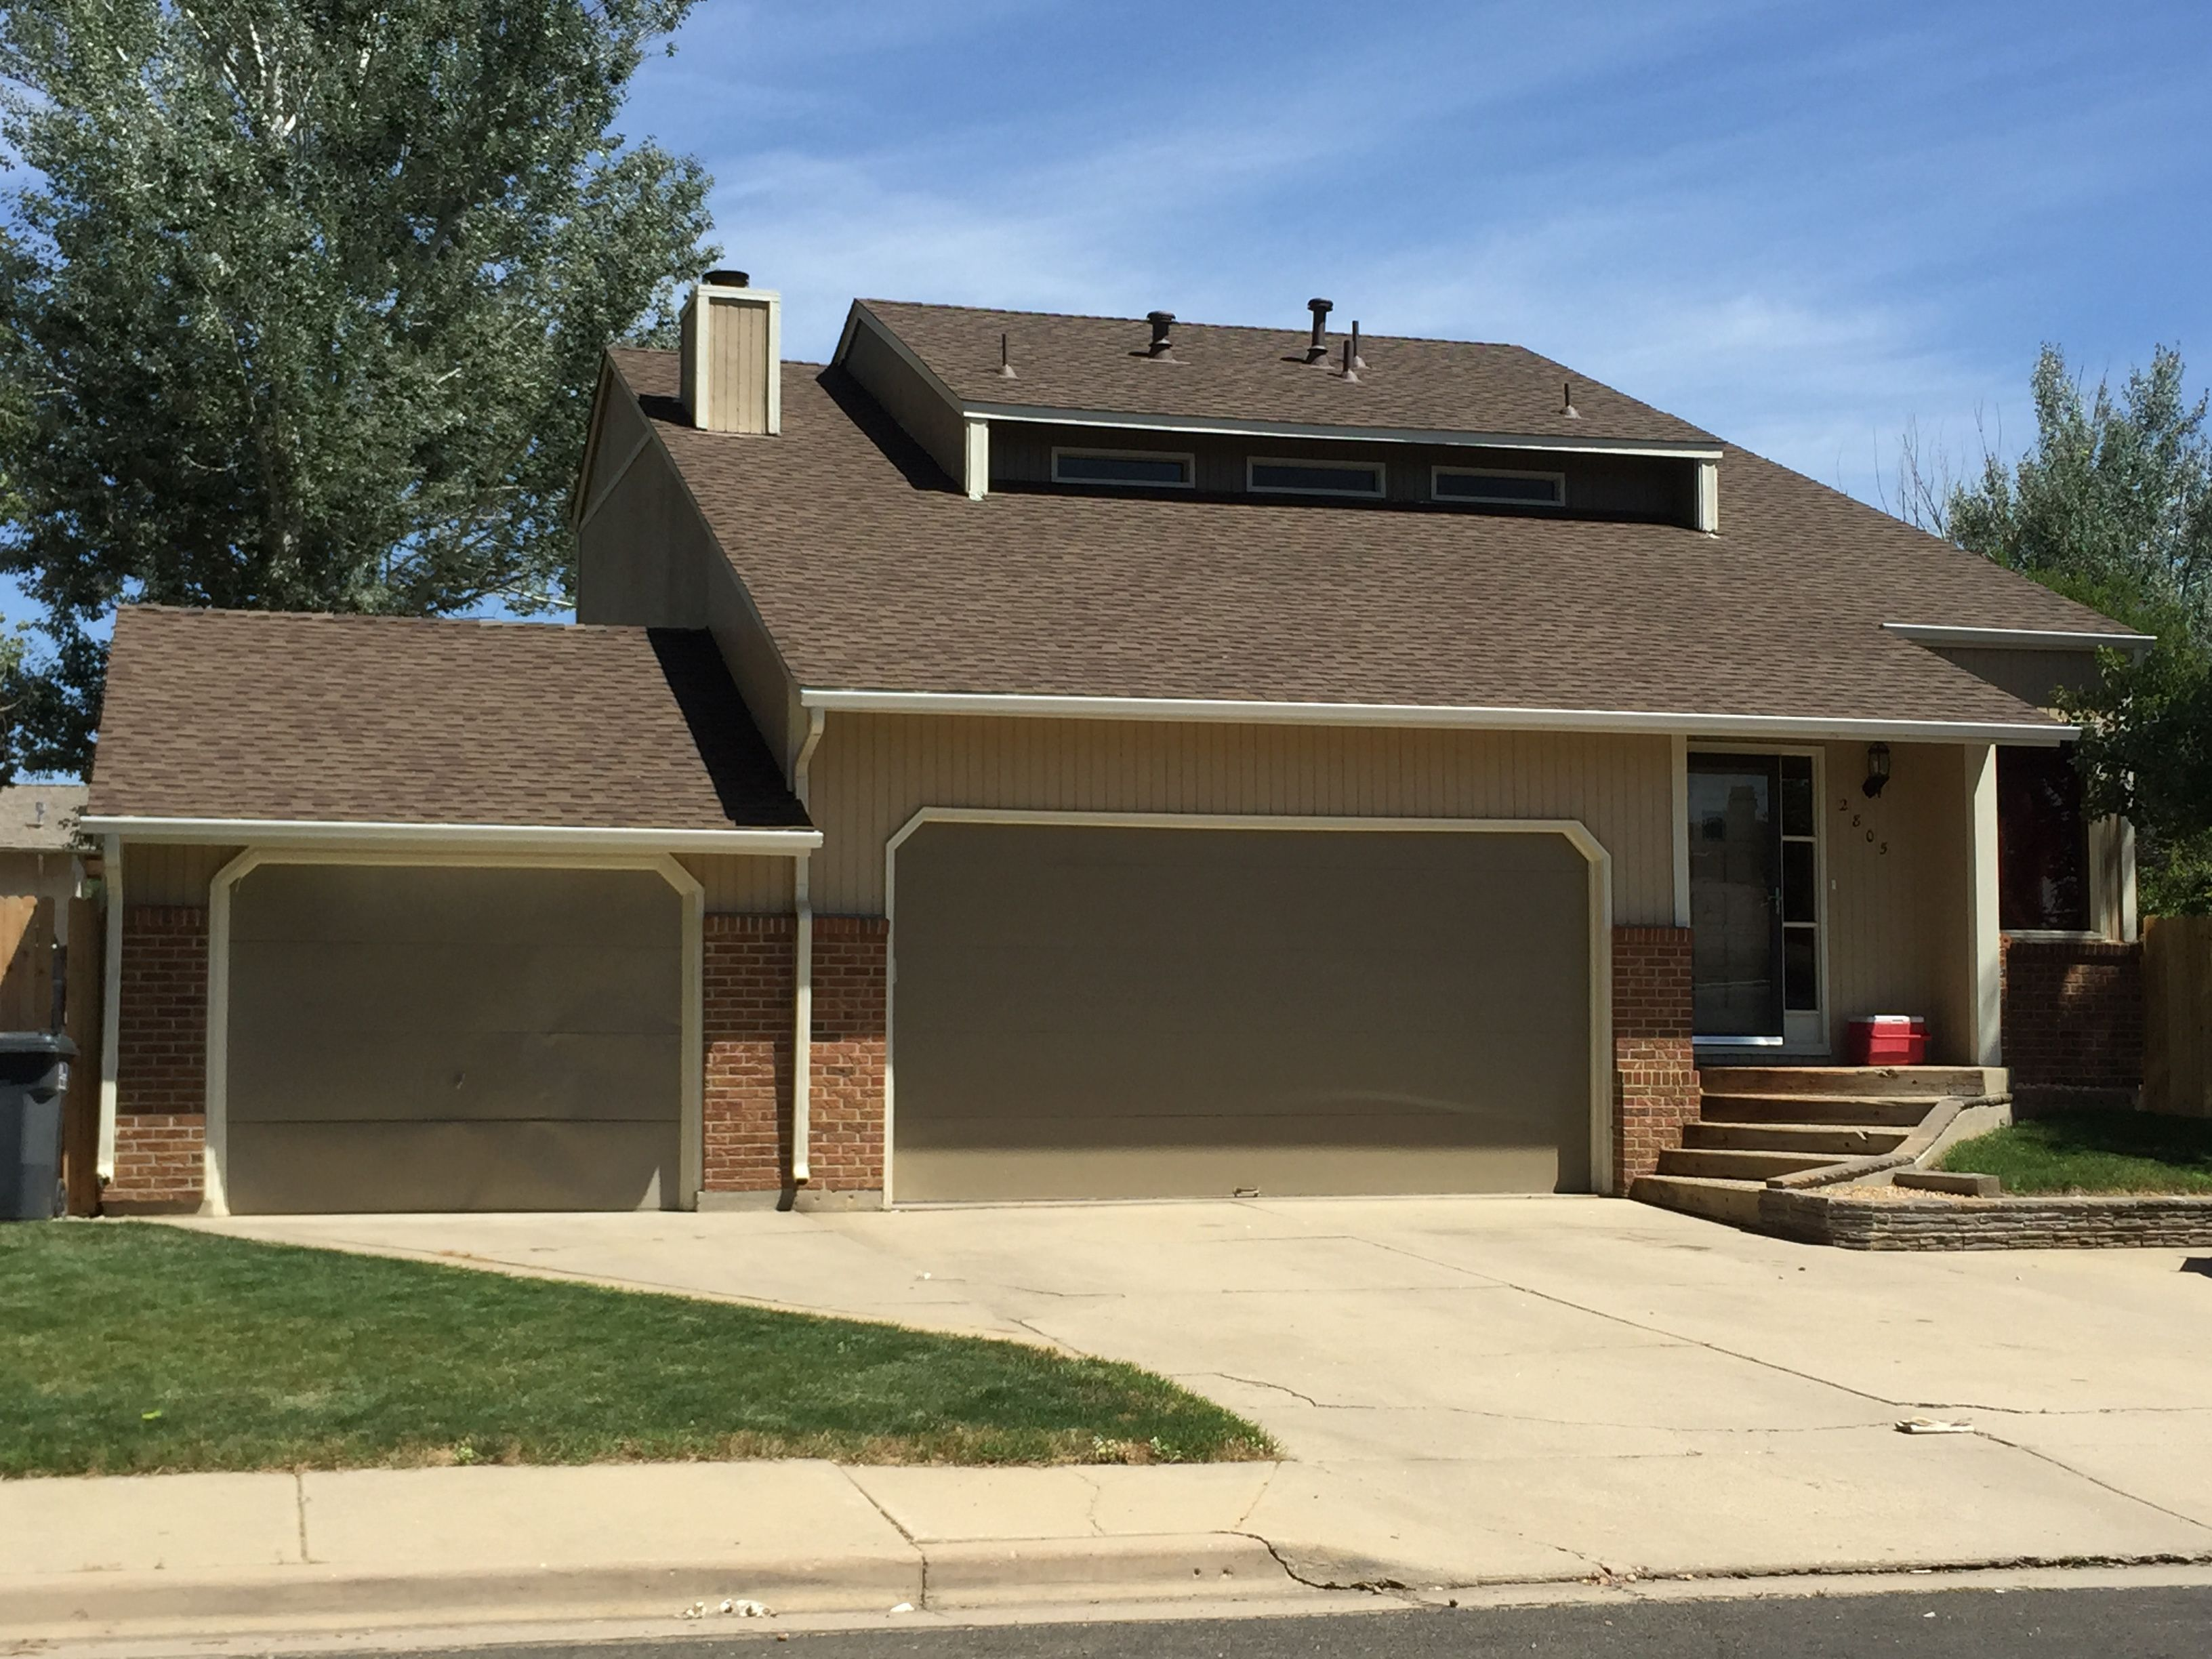 This Home In Longmont Looks So Nice With Barkwood Shingles